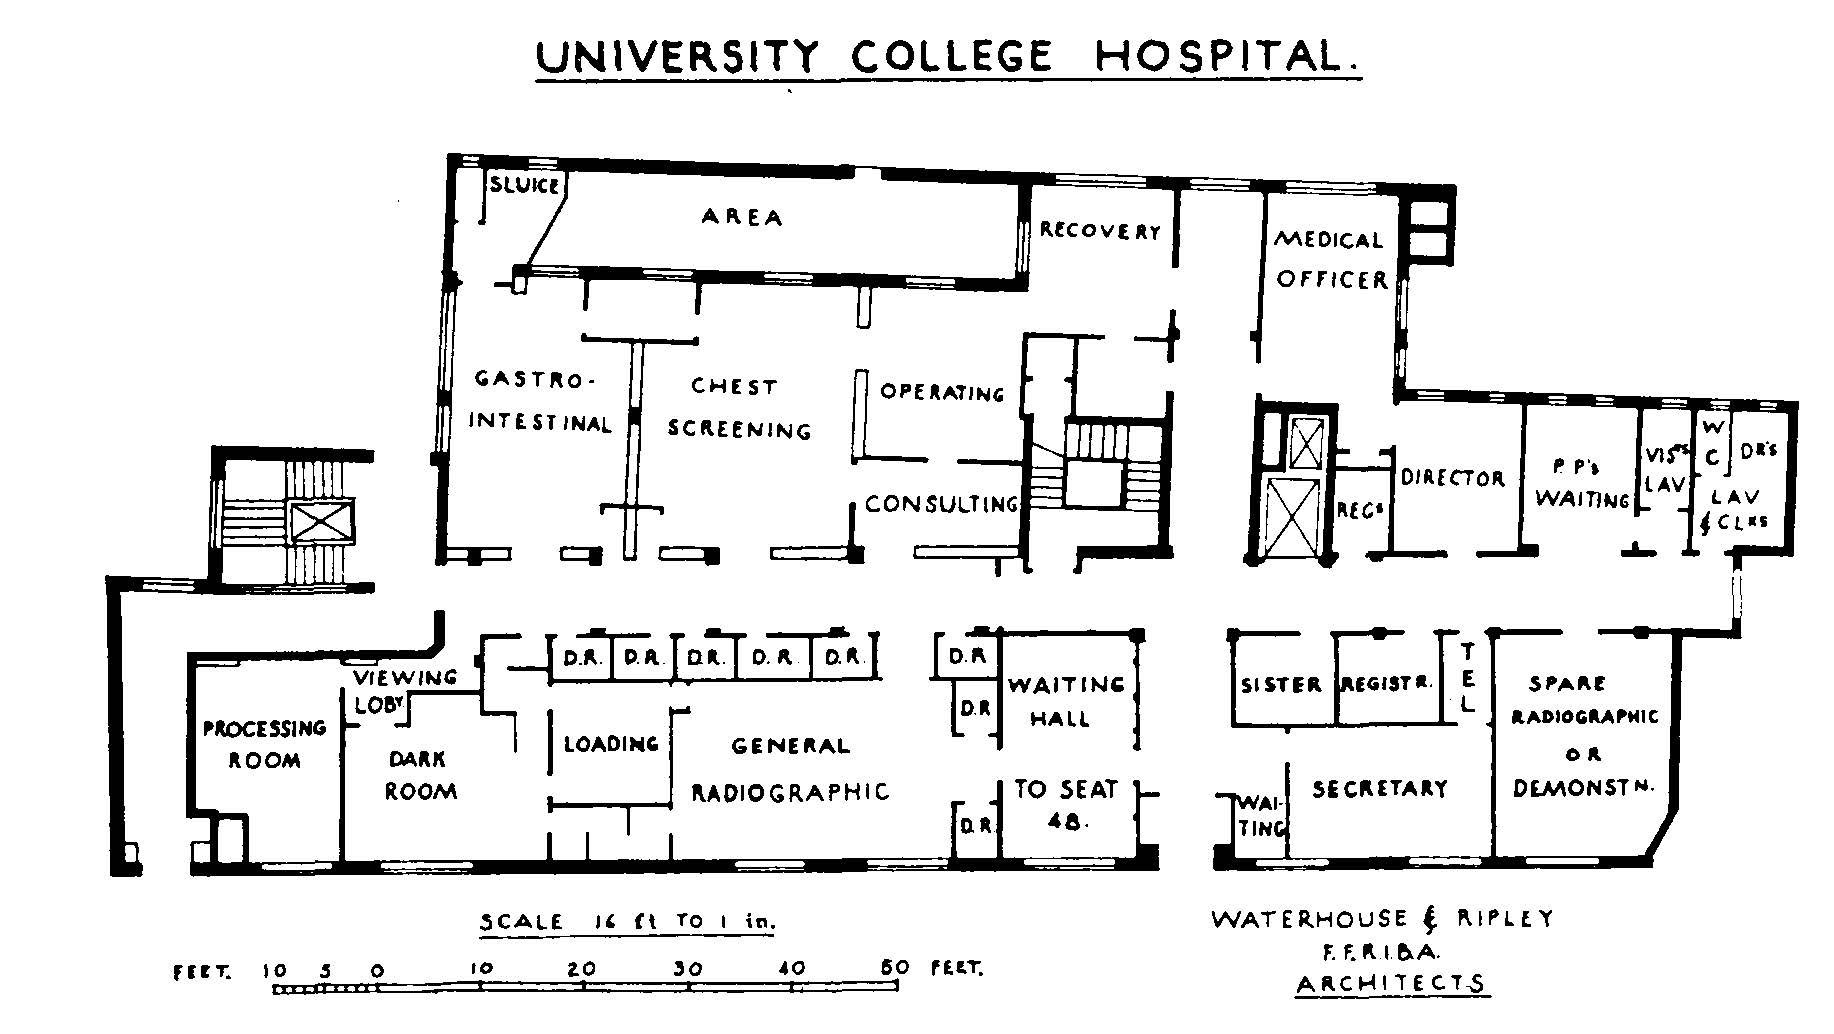 University College Hospital Radiology Department Plan